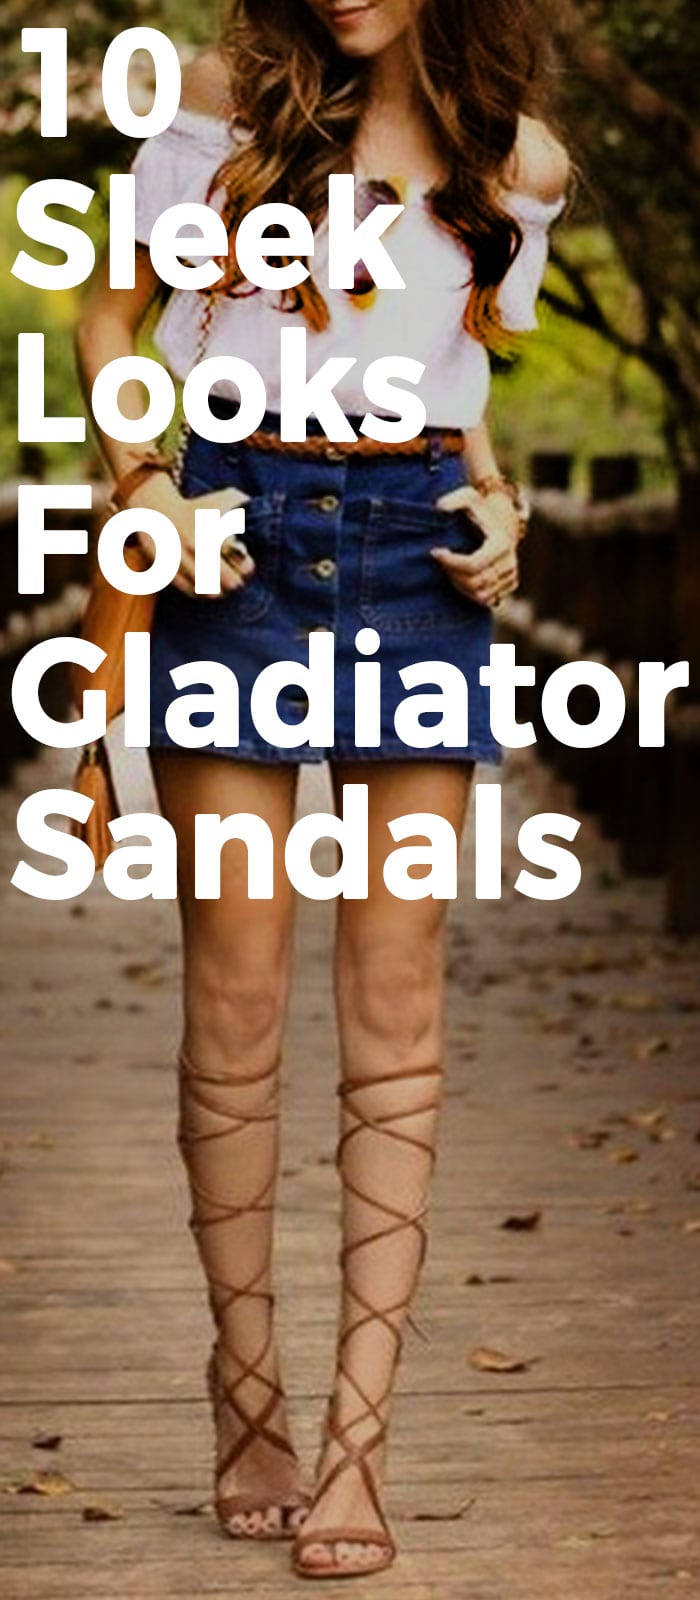 10 Sleek And Sexy Looks For Gladiator Sandals!